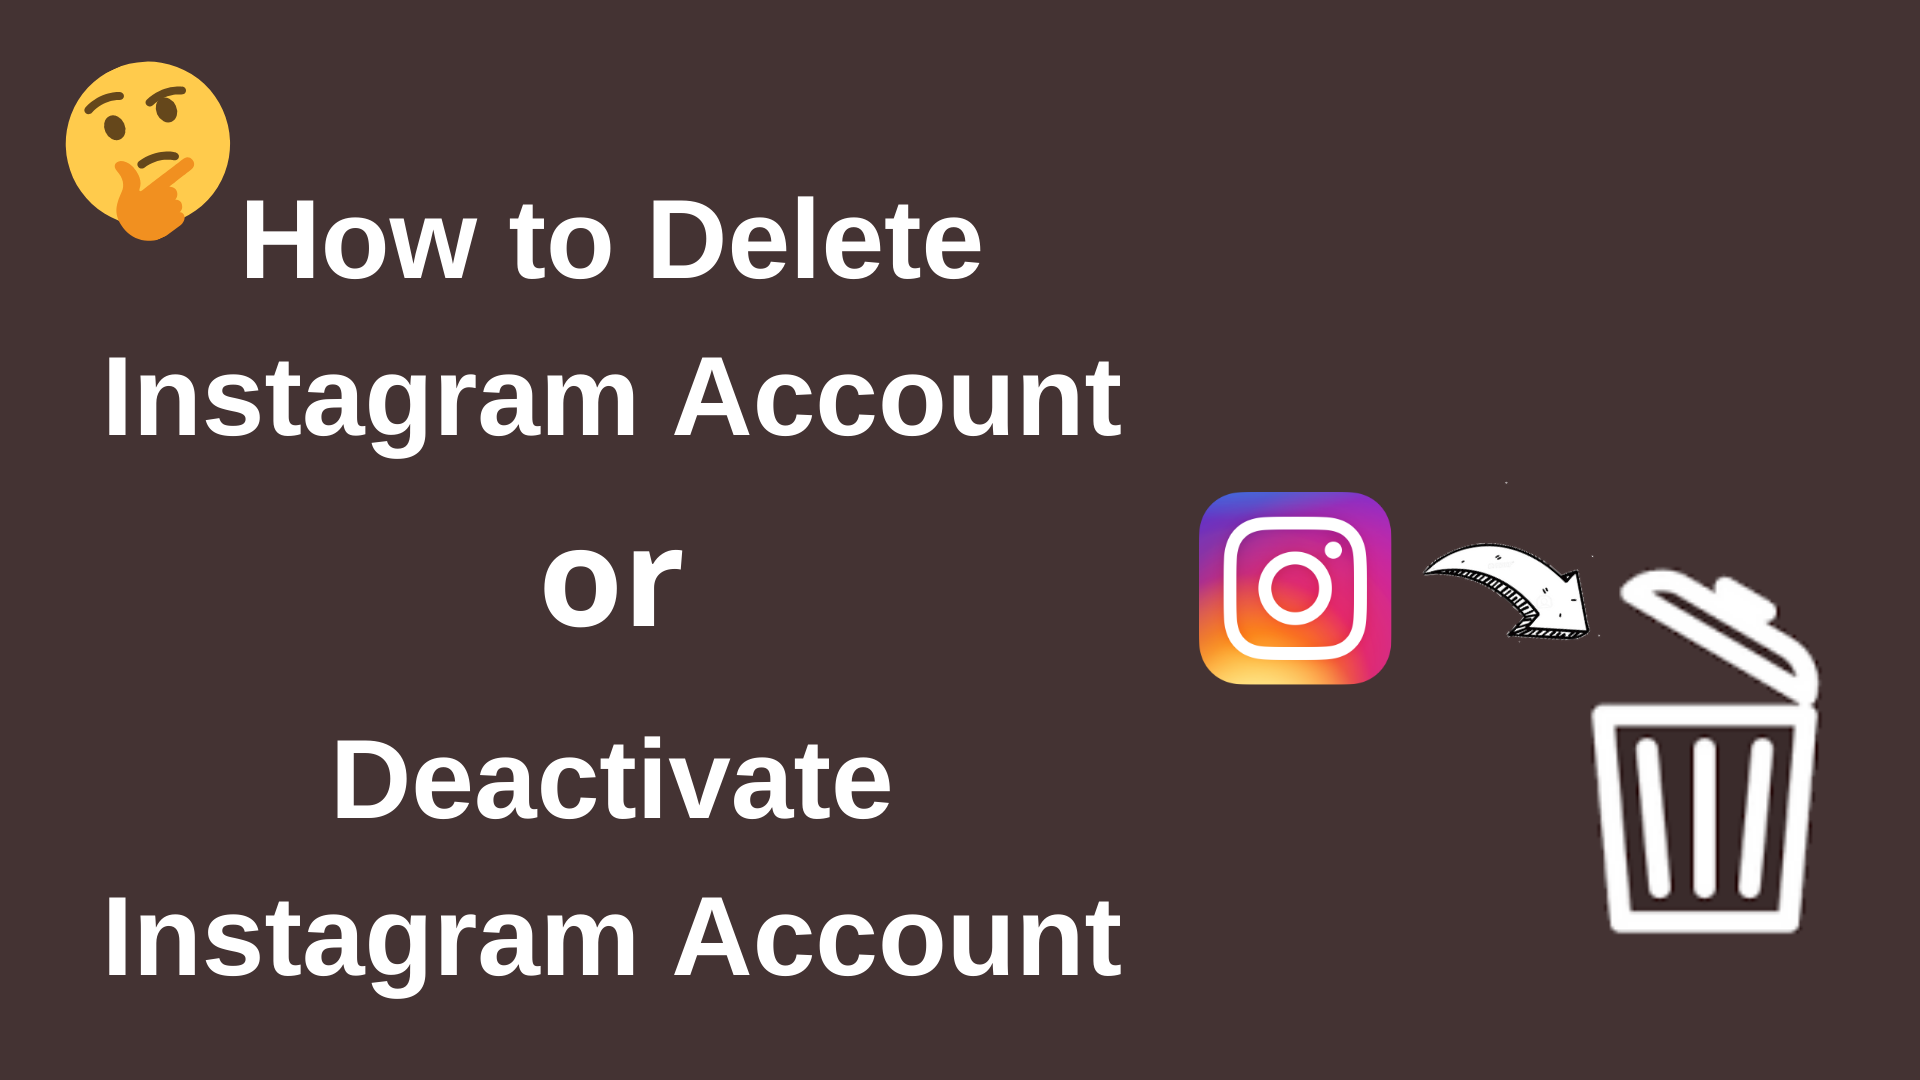 Delete Instagram Account - How to Delete Instagram Account (With Pictures) 2020